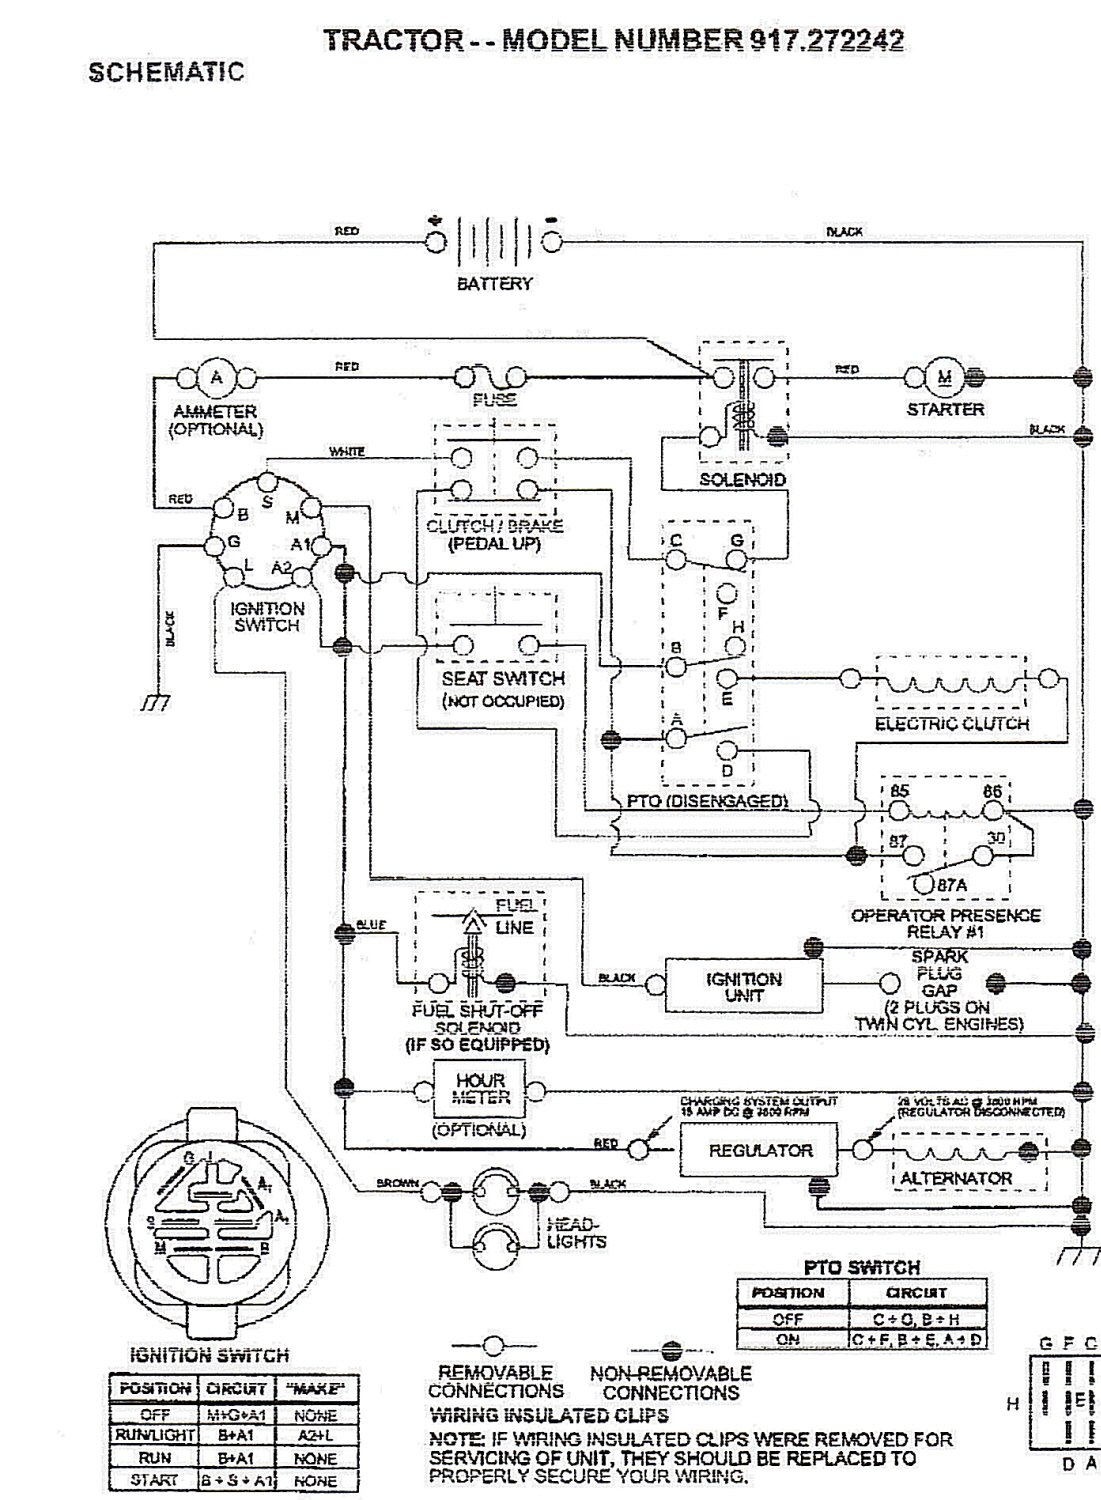 2013 05 25_033810_craftsman_917 272242 have a craftsman ohv 17hp model310707 type 0137 e1 lawn tractor craftsman model 917 wiring diagram at creativeand.co